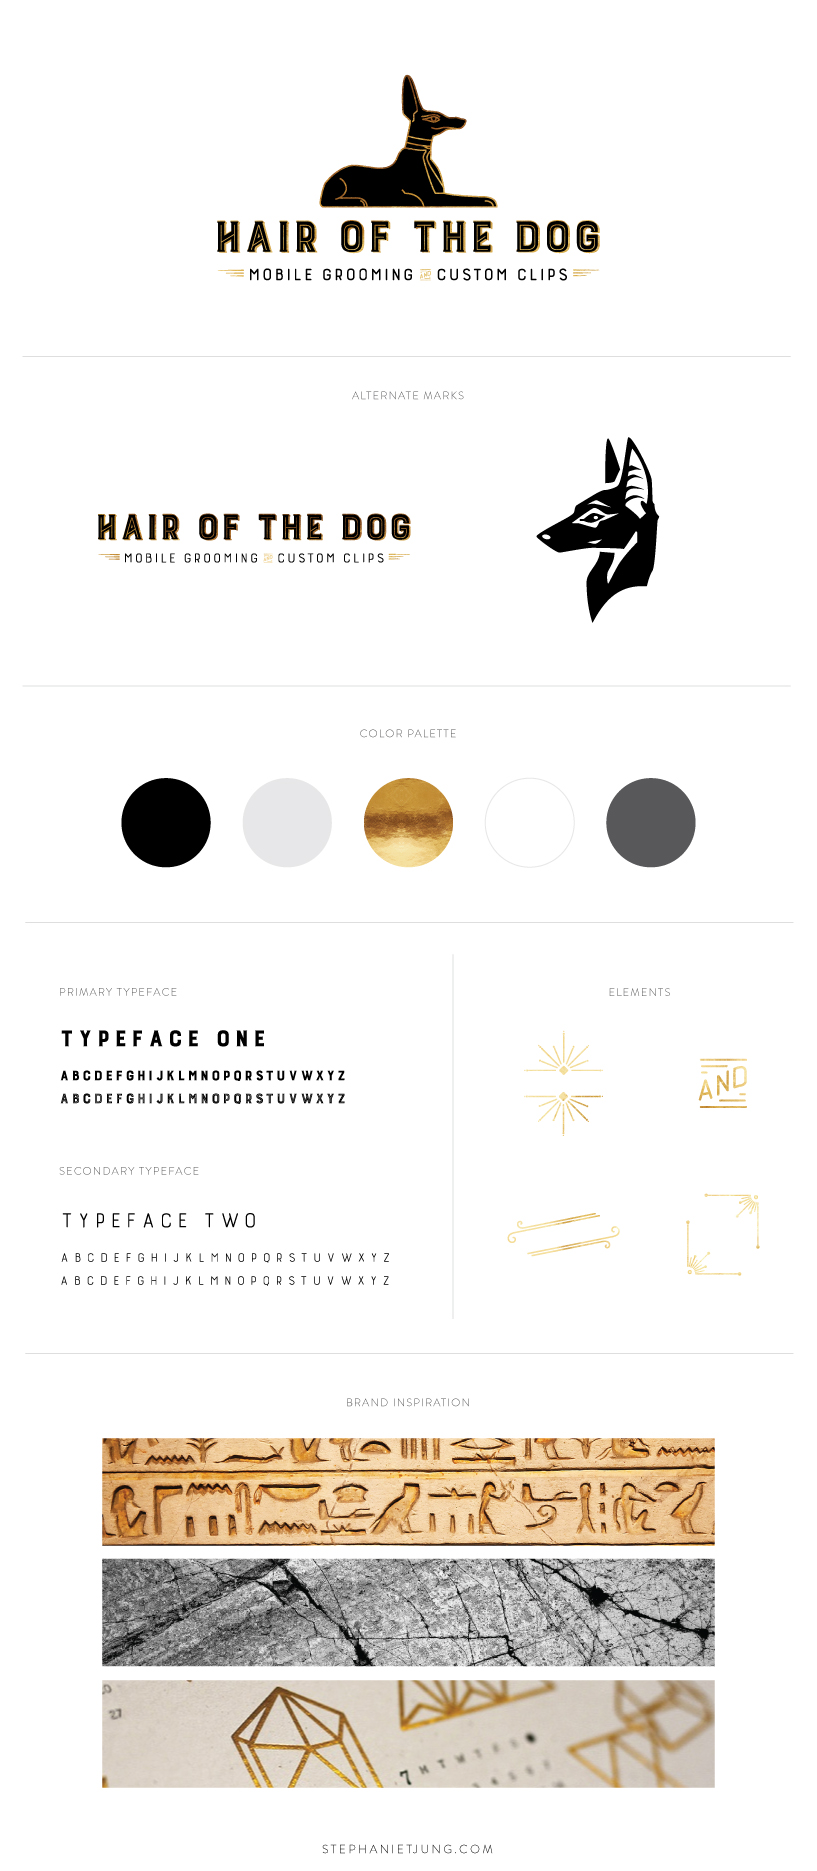 Hair of the Dog Mobile Grooming Salon Branding by Stephanie Jung